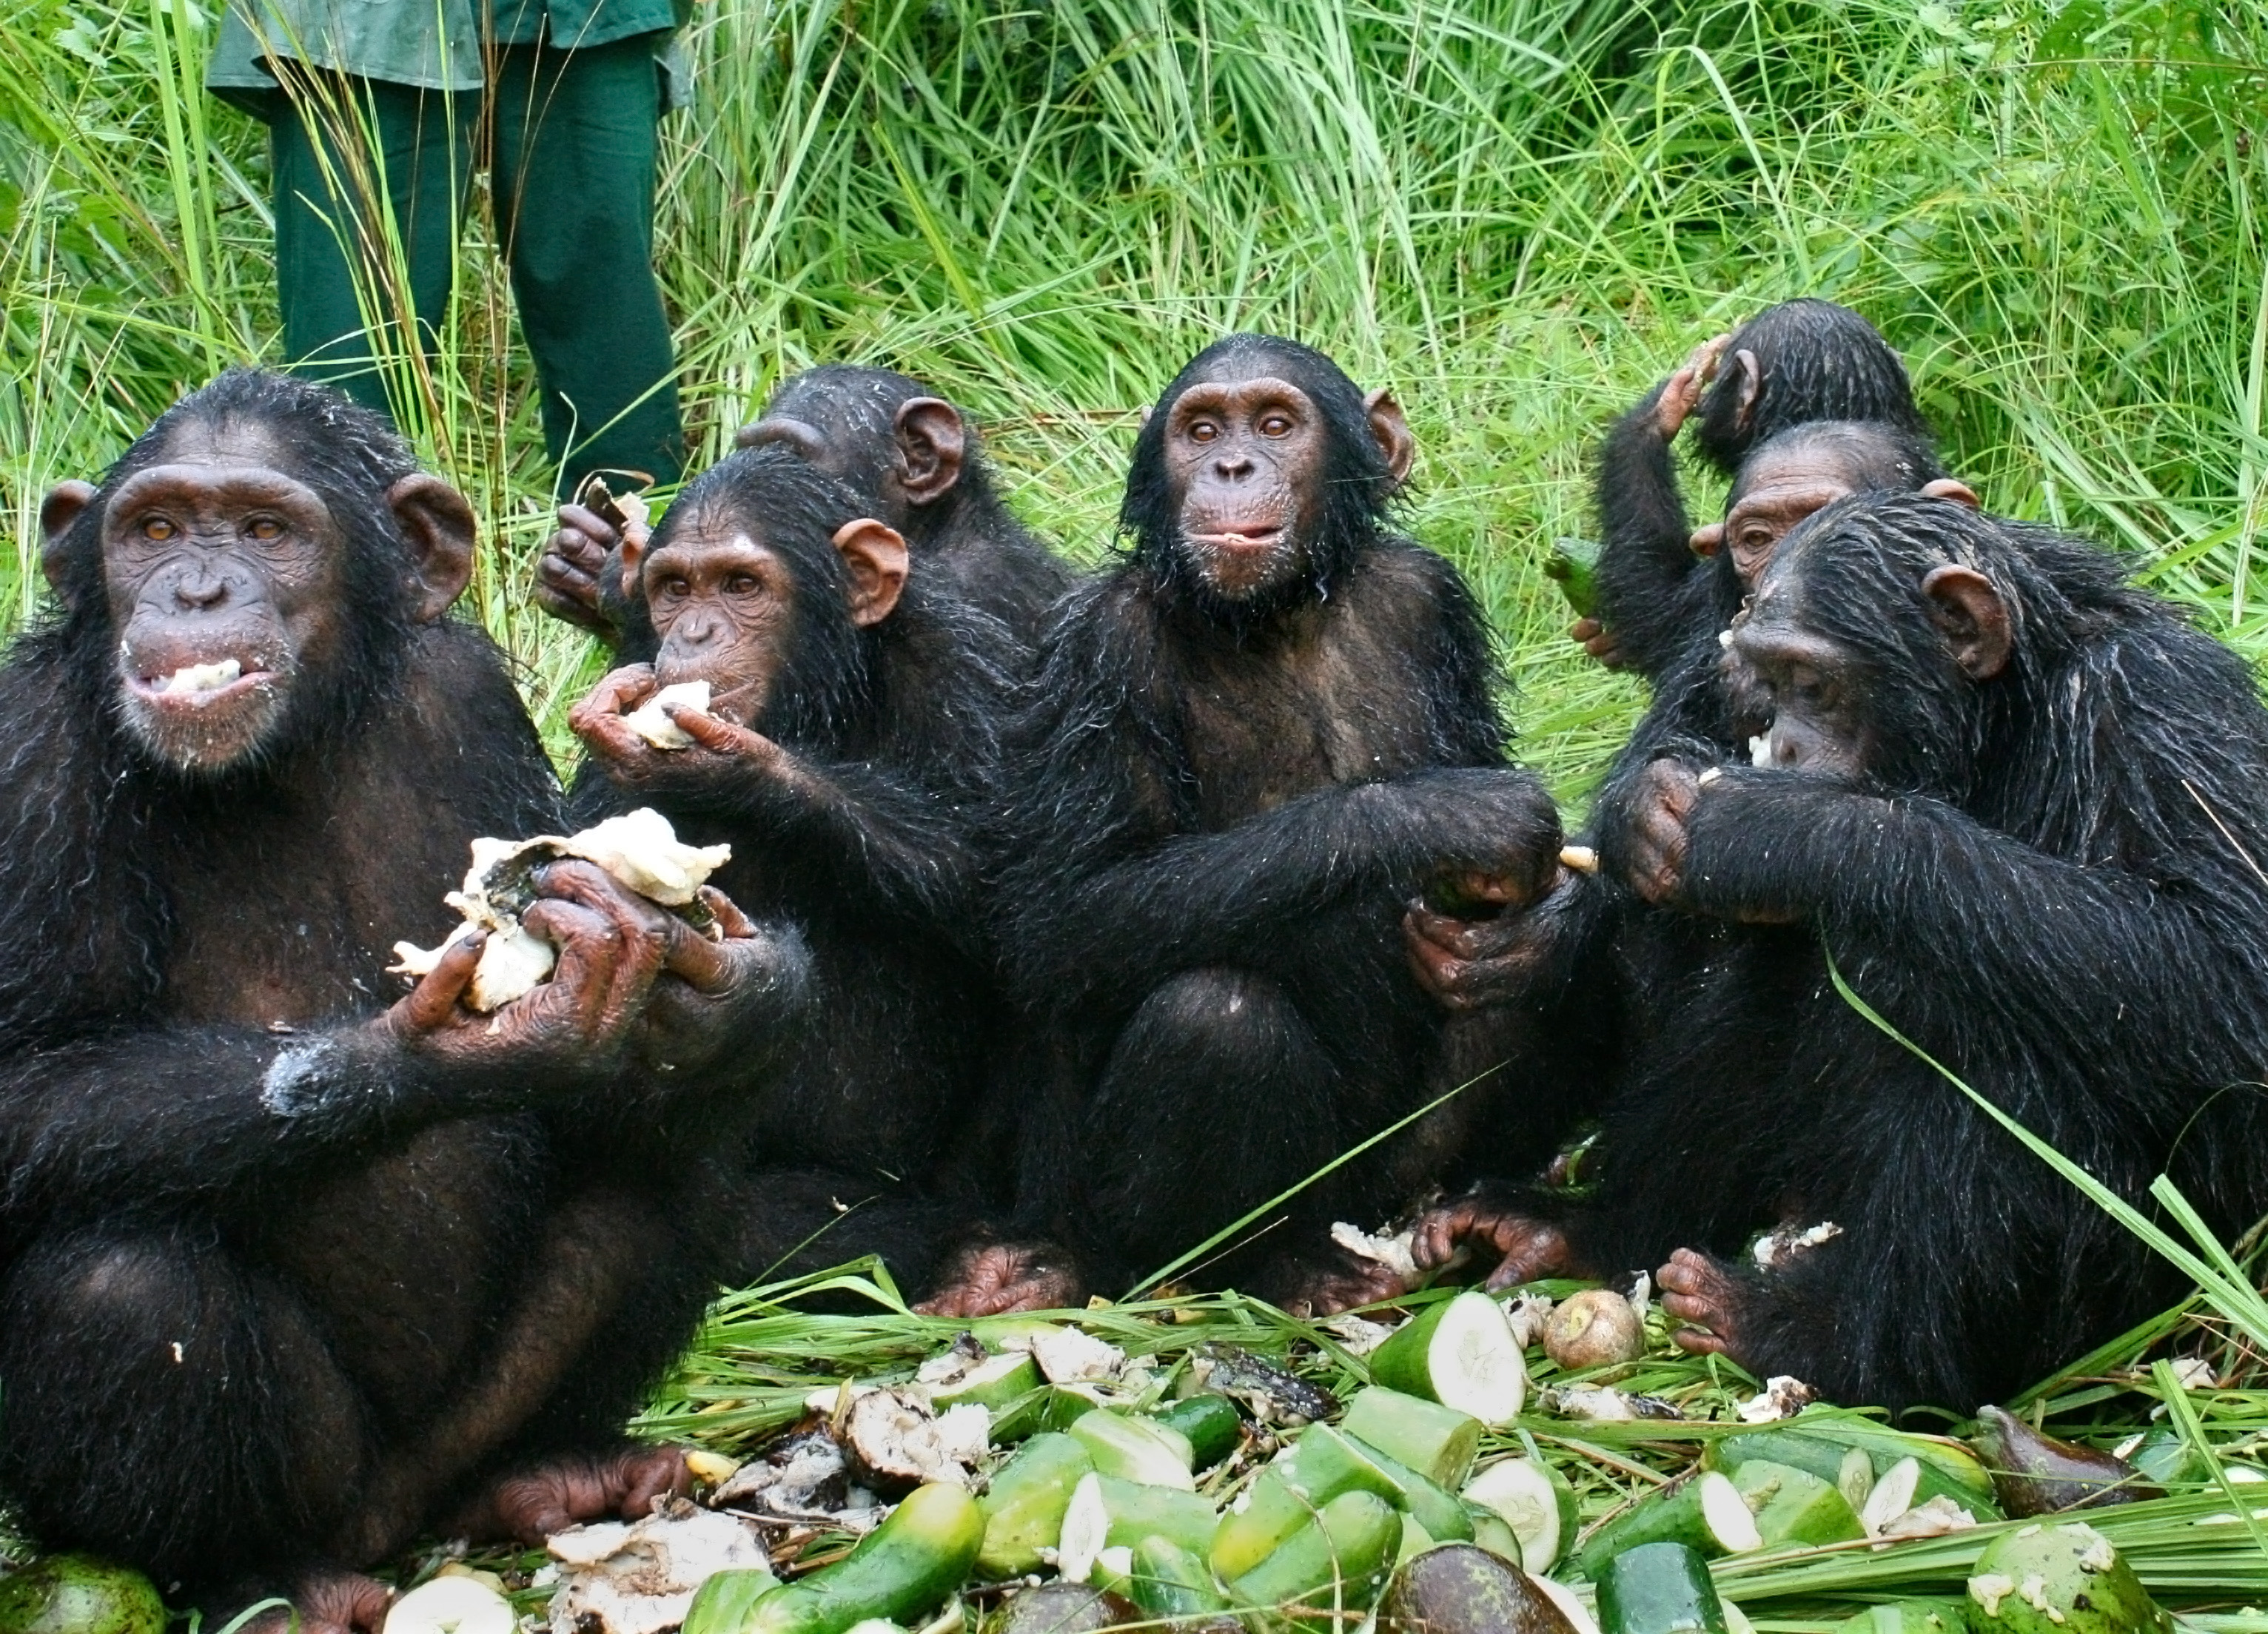 The chimpanzees gather for a meal. Image credit: Jane Goodall Institute / By Fernando Turmo